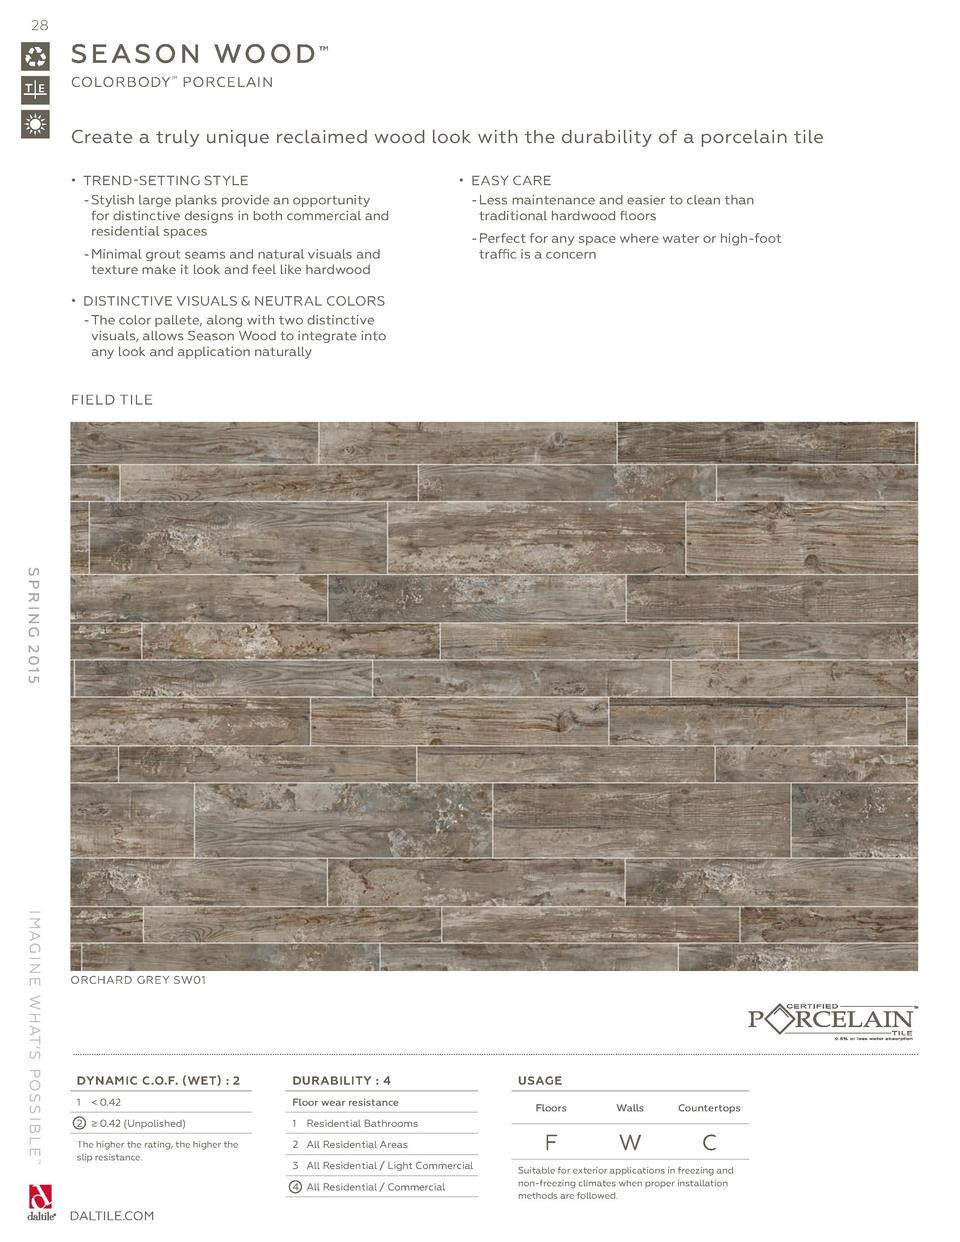 pb hardwood and laminate floor cleaner of daltile spring 2015 catalog simplebooklet com with regard to 28 s e a s o n wo o d colorbody porcelain create a truly unique reclaimed wood look with the durability